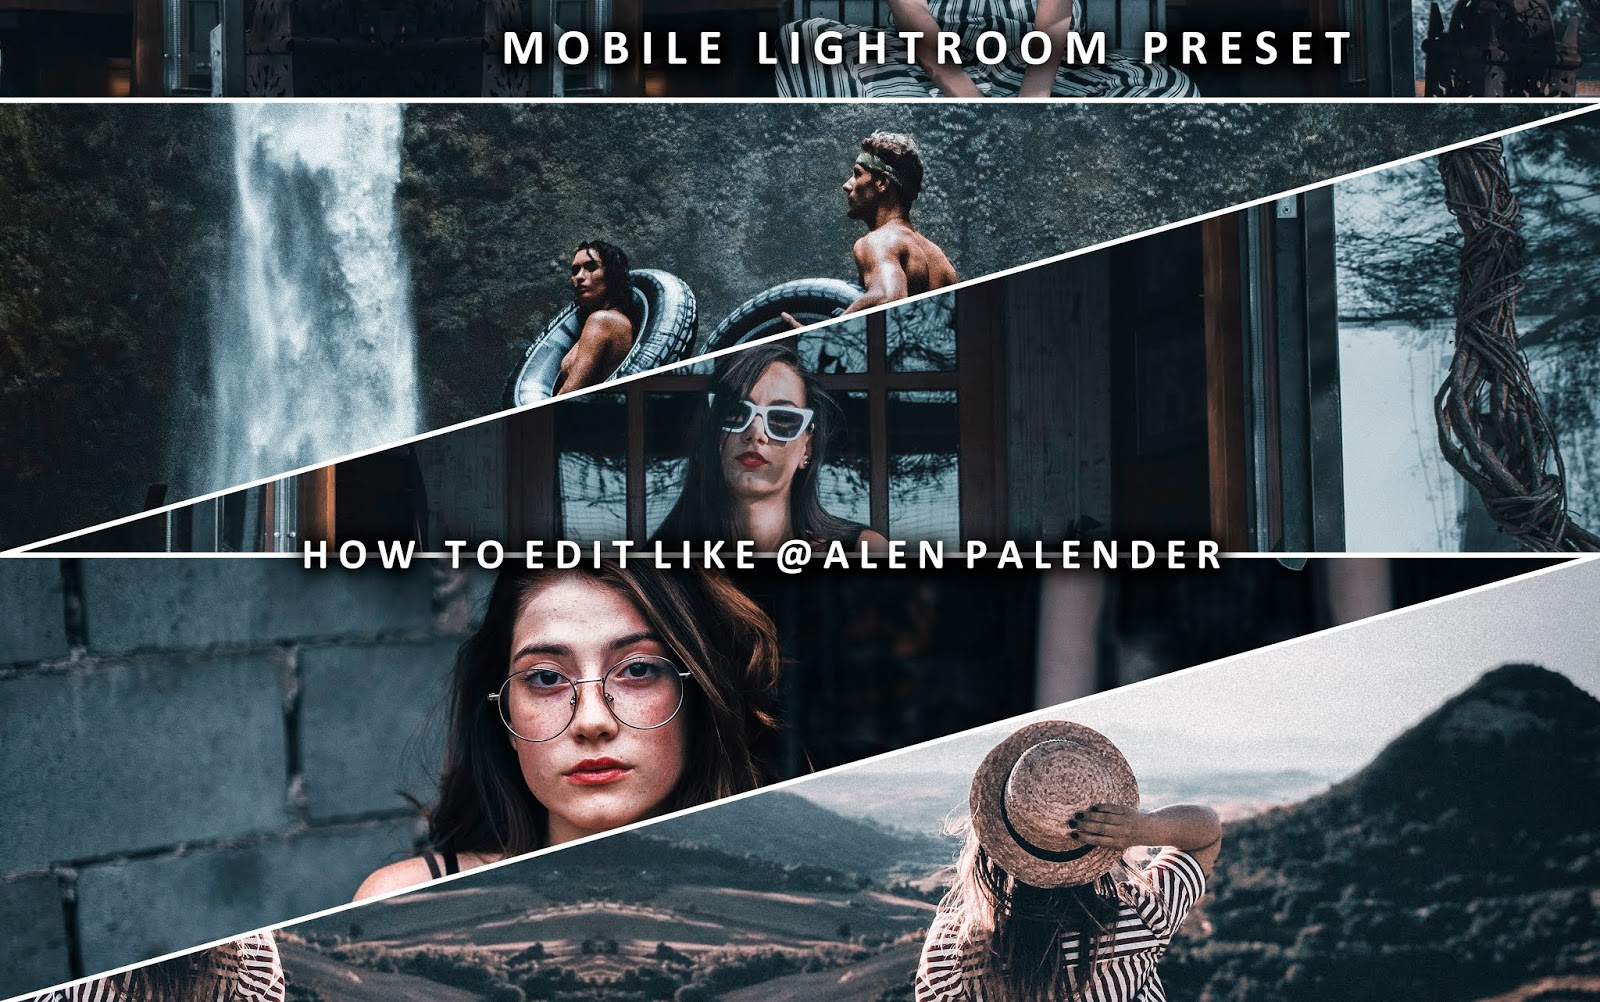 Download Alen Palender Mobile Lightroom Preset for Free | How to Edit Photos Like Alen Palender in Mobile Lightroom App